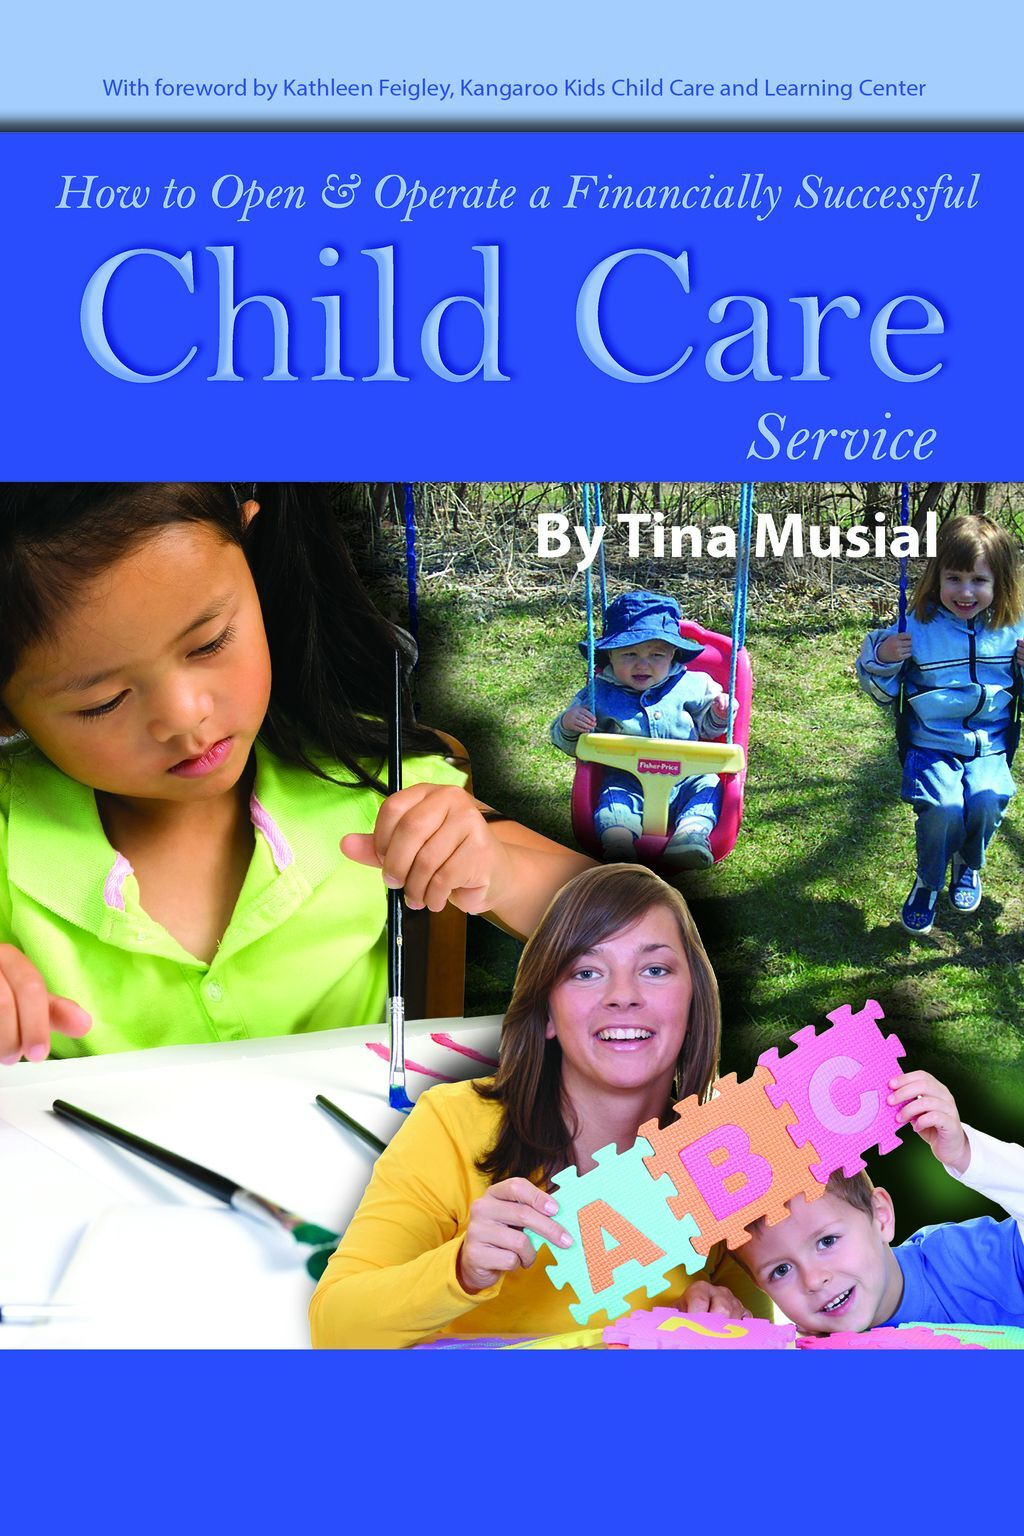 How To Open & Operate A Financially Successful Child Care Service